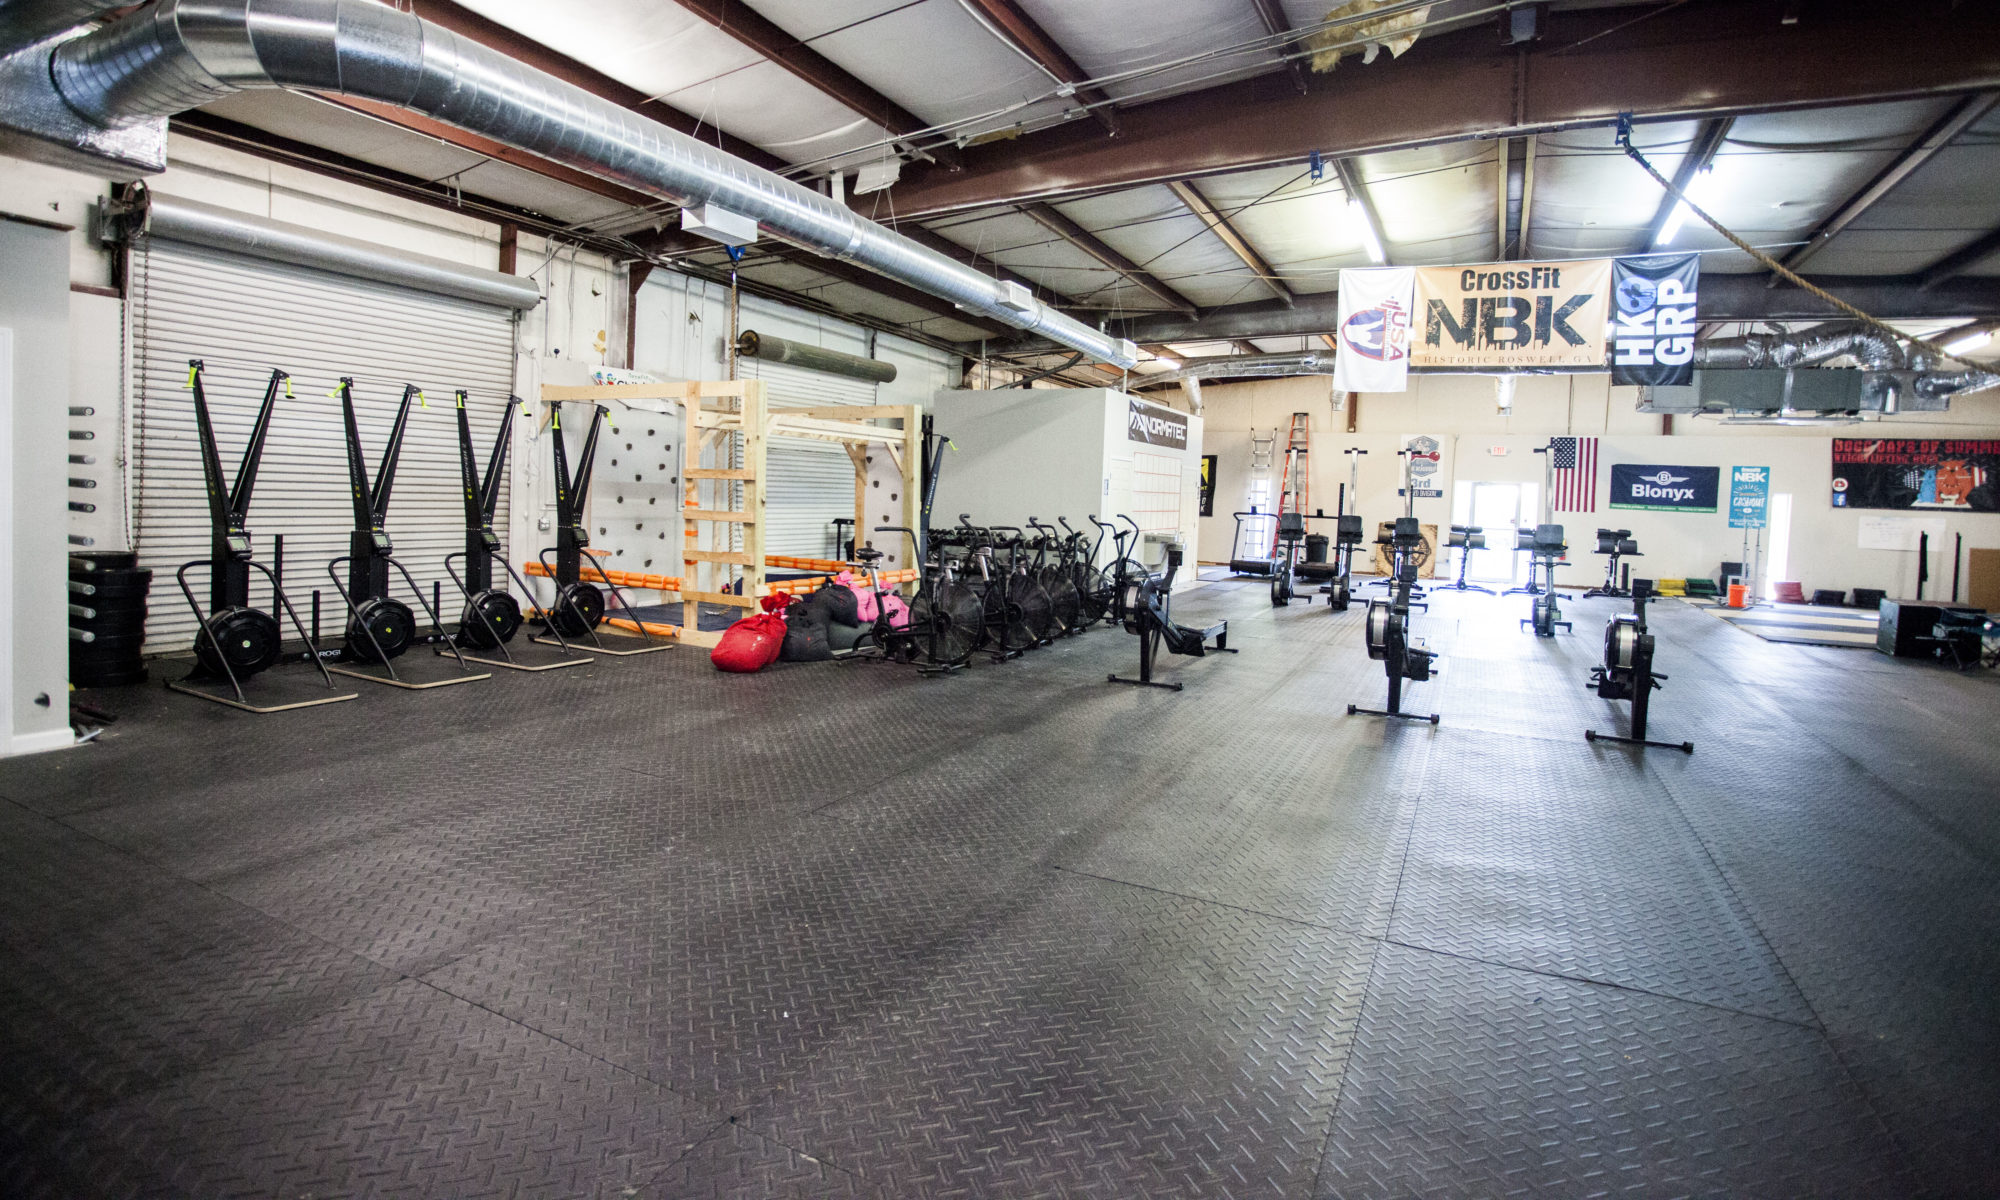 Crossfit stocked up in stockton journal preview youtube